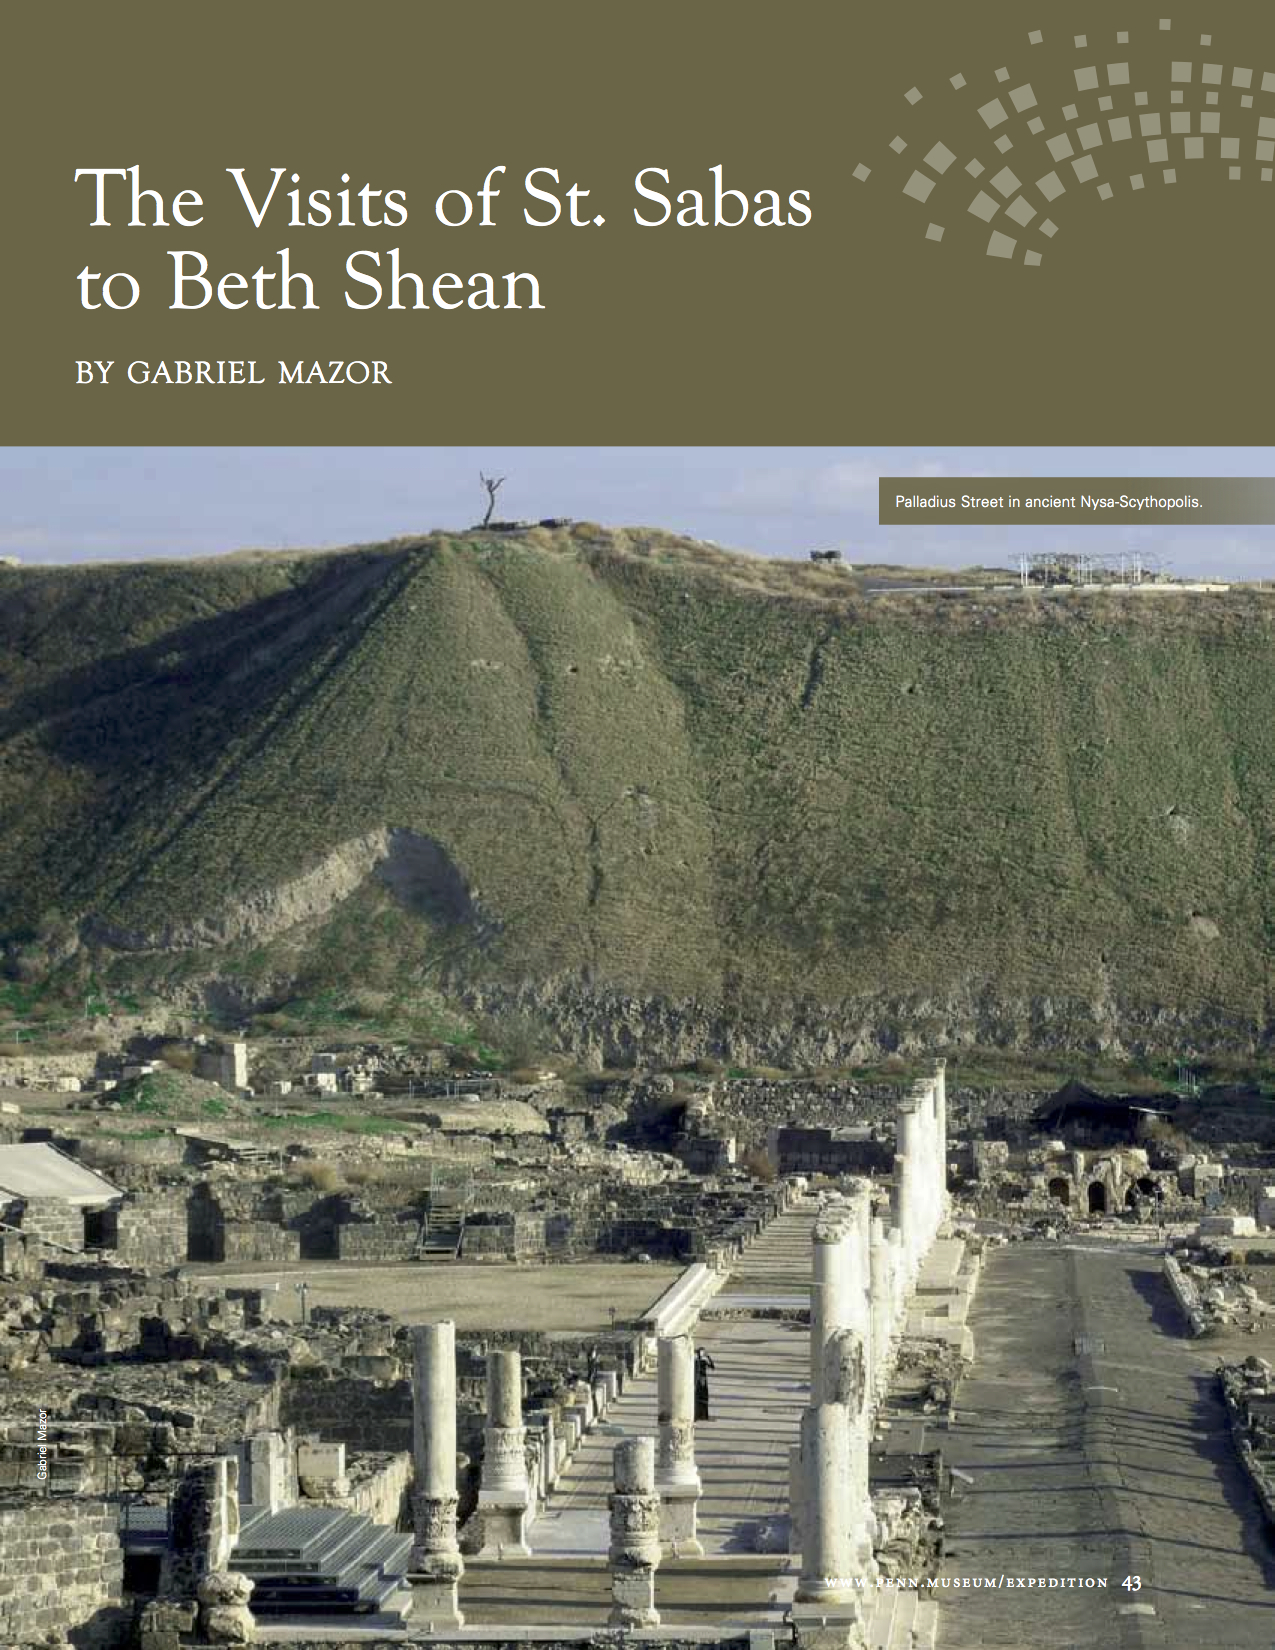 """Gabriel Mazor, """"The Visits of St. Sabas to Beth Shean,"""" Expedition 55, no. 1 (2013): 43-48."""